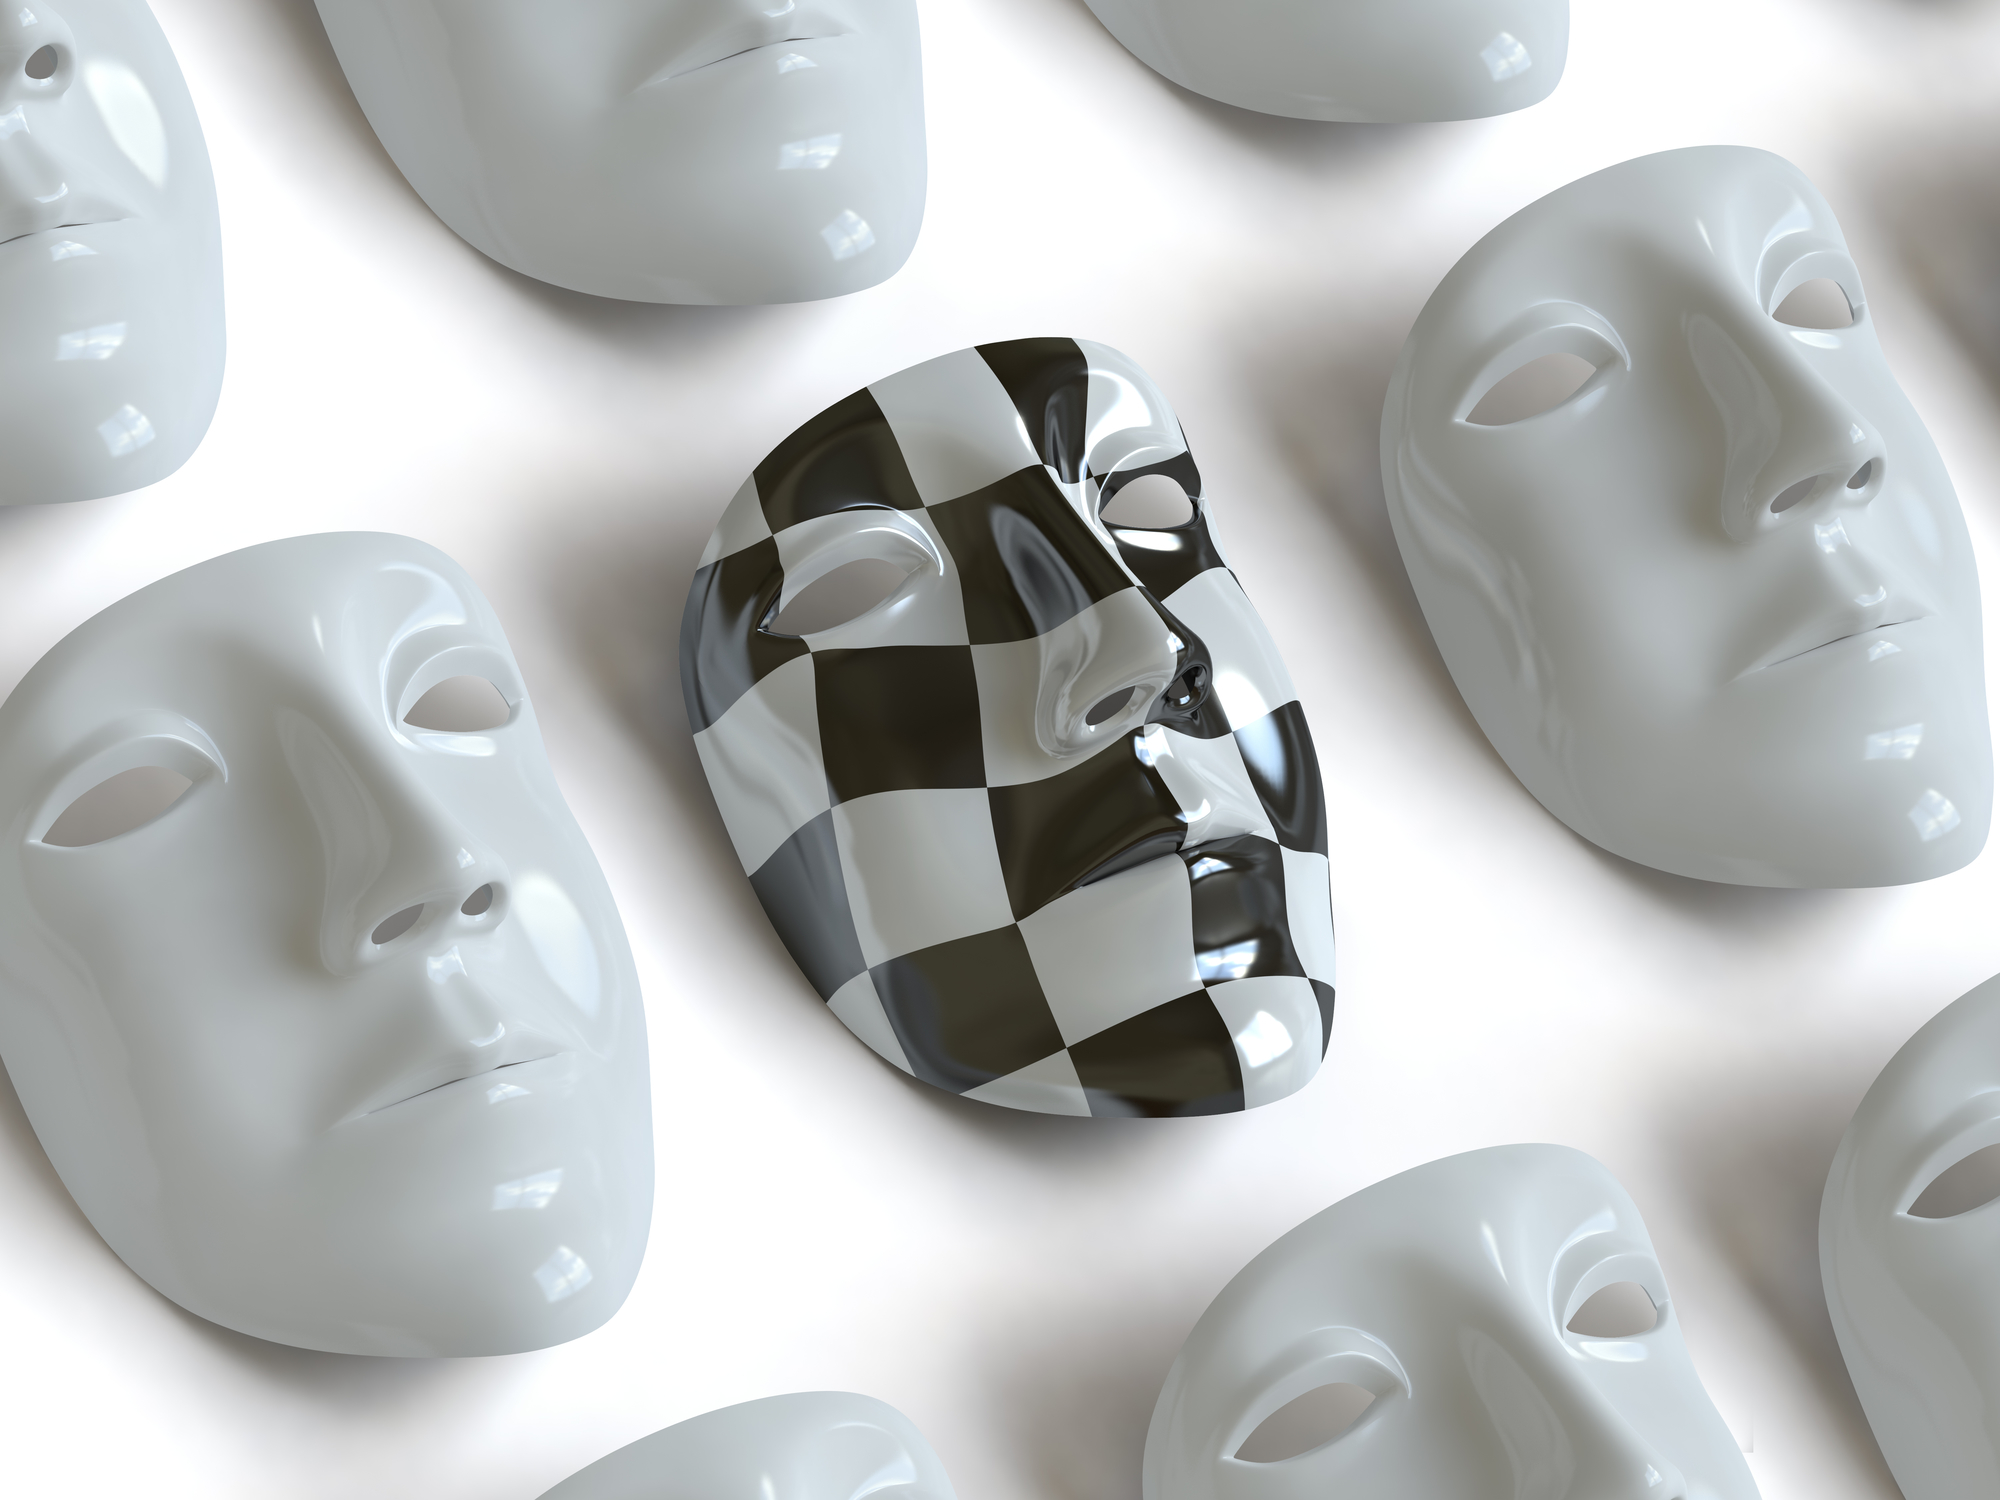 image of masks showing a different personality type